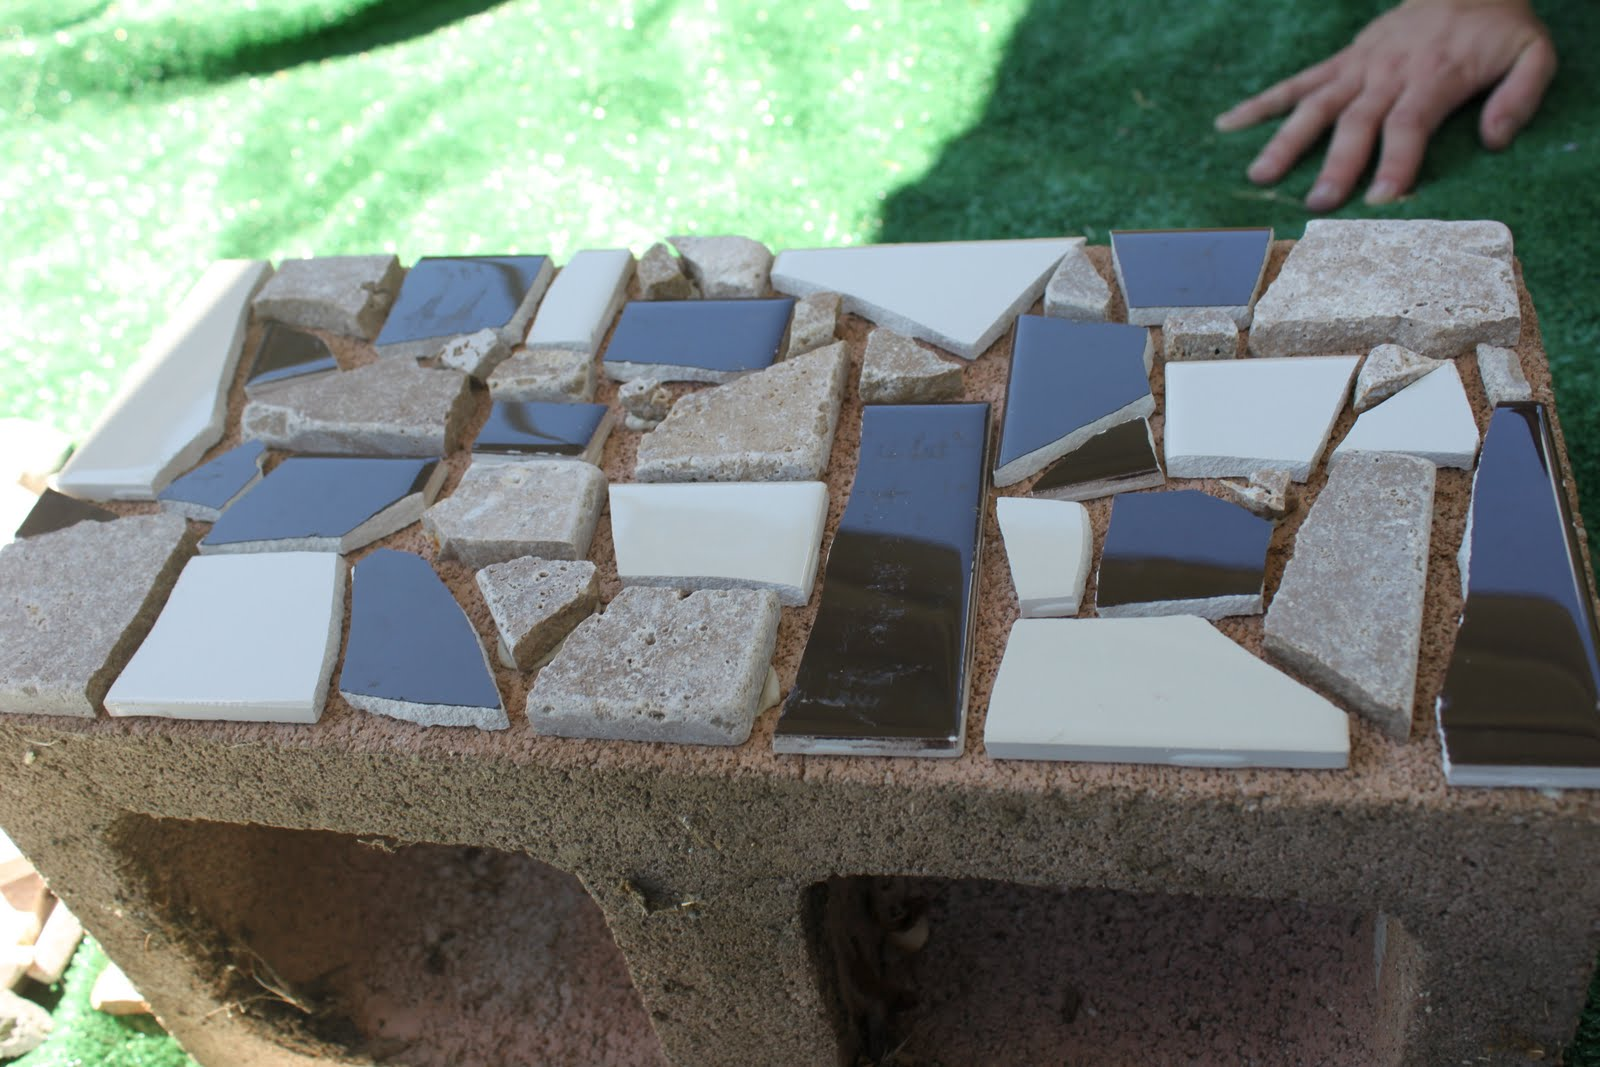 Mosaic Cinder Block Planter Part e Delicate Construction